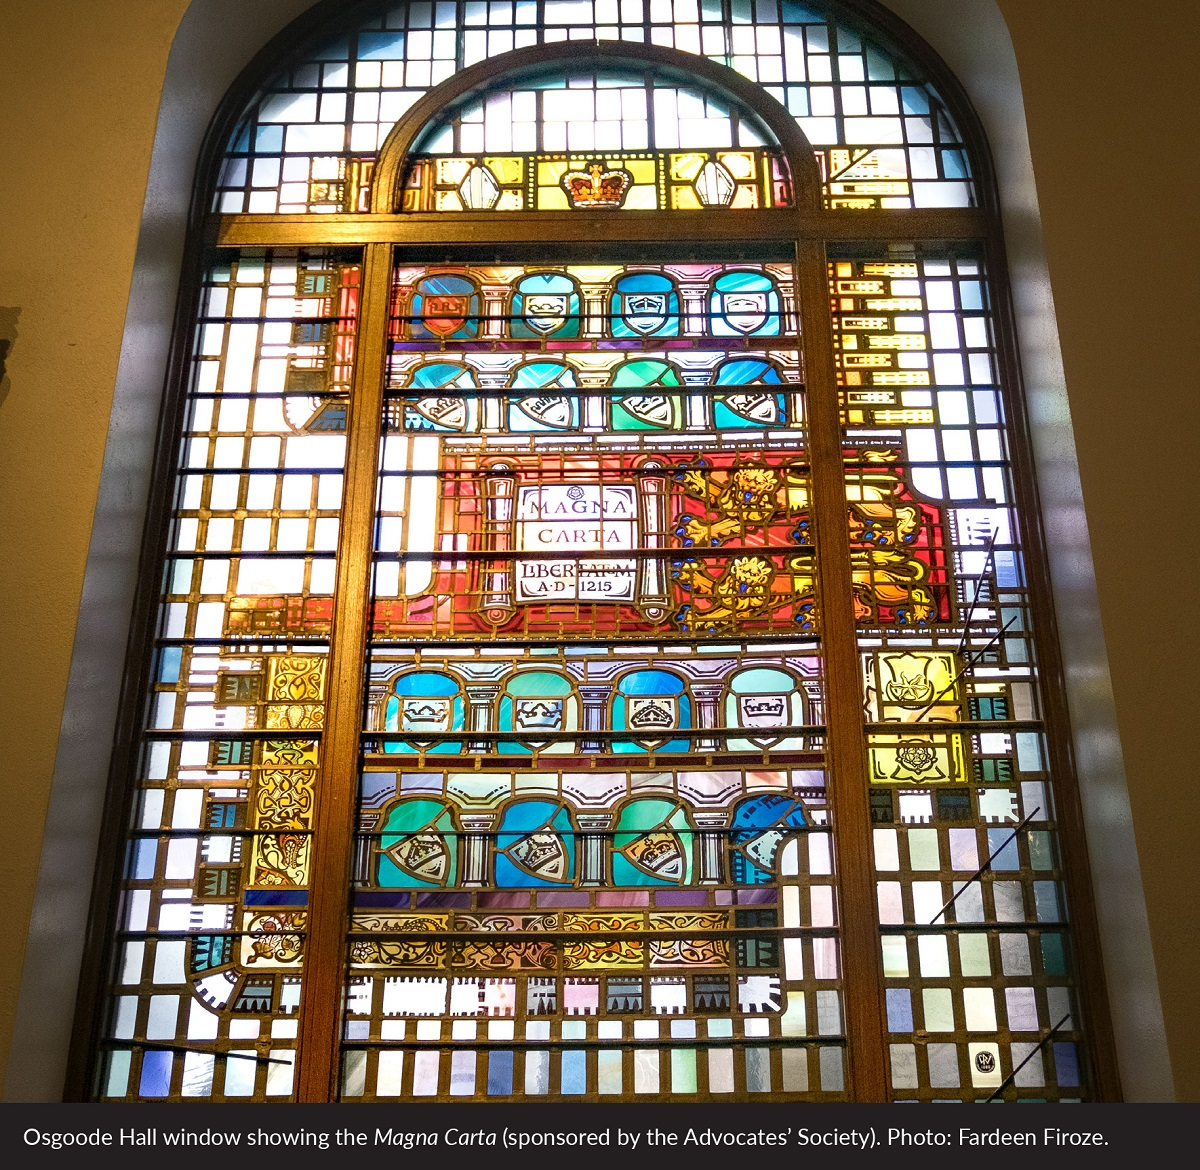 Osgoode Hall window showing the Magna Carta